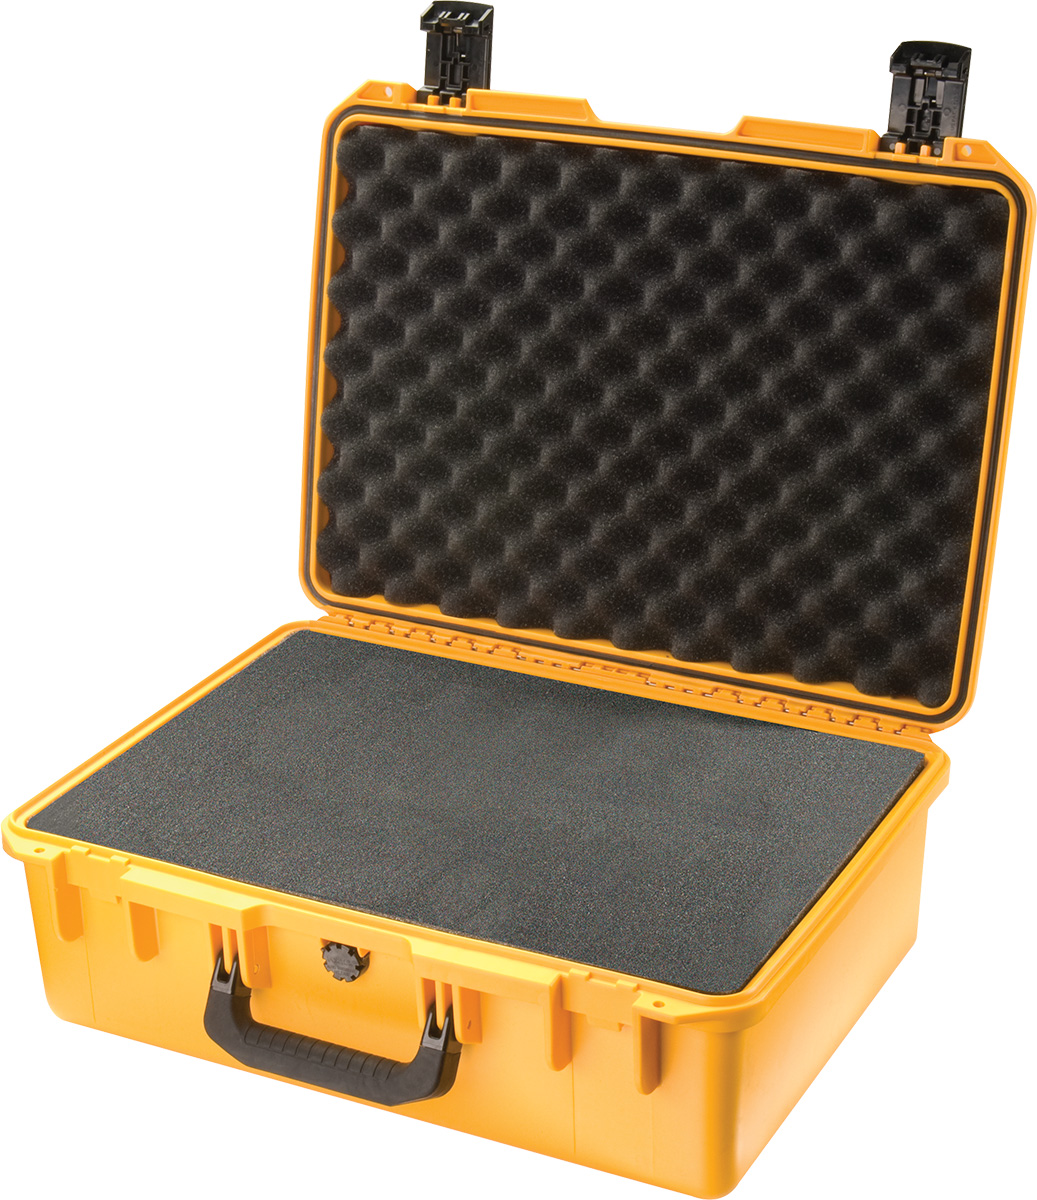 pelican im2600 yellow storm electronics case